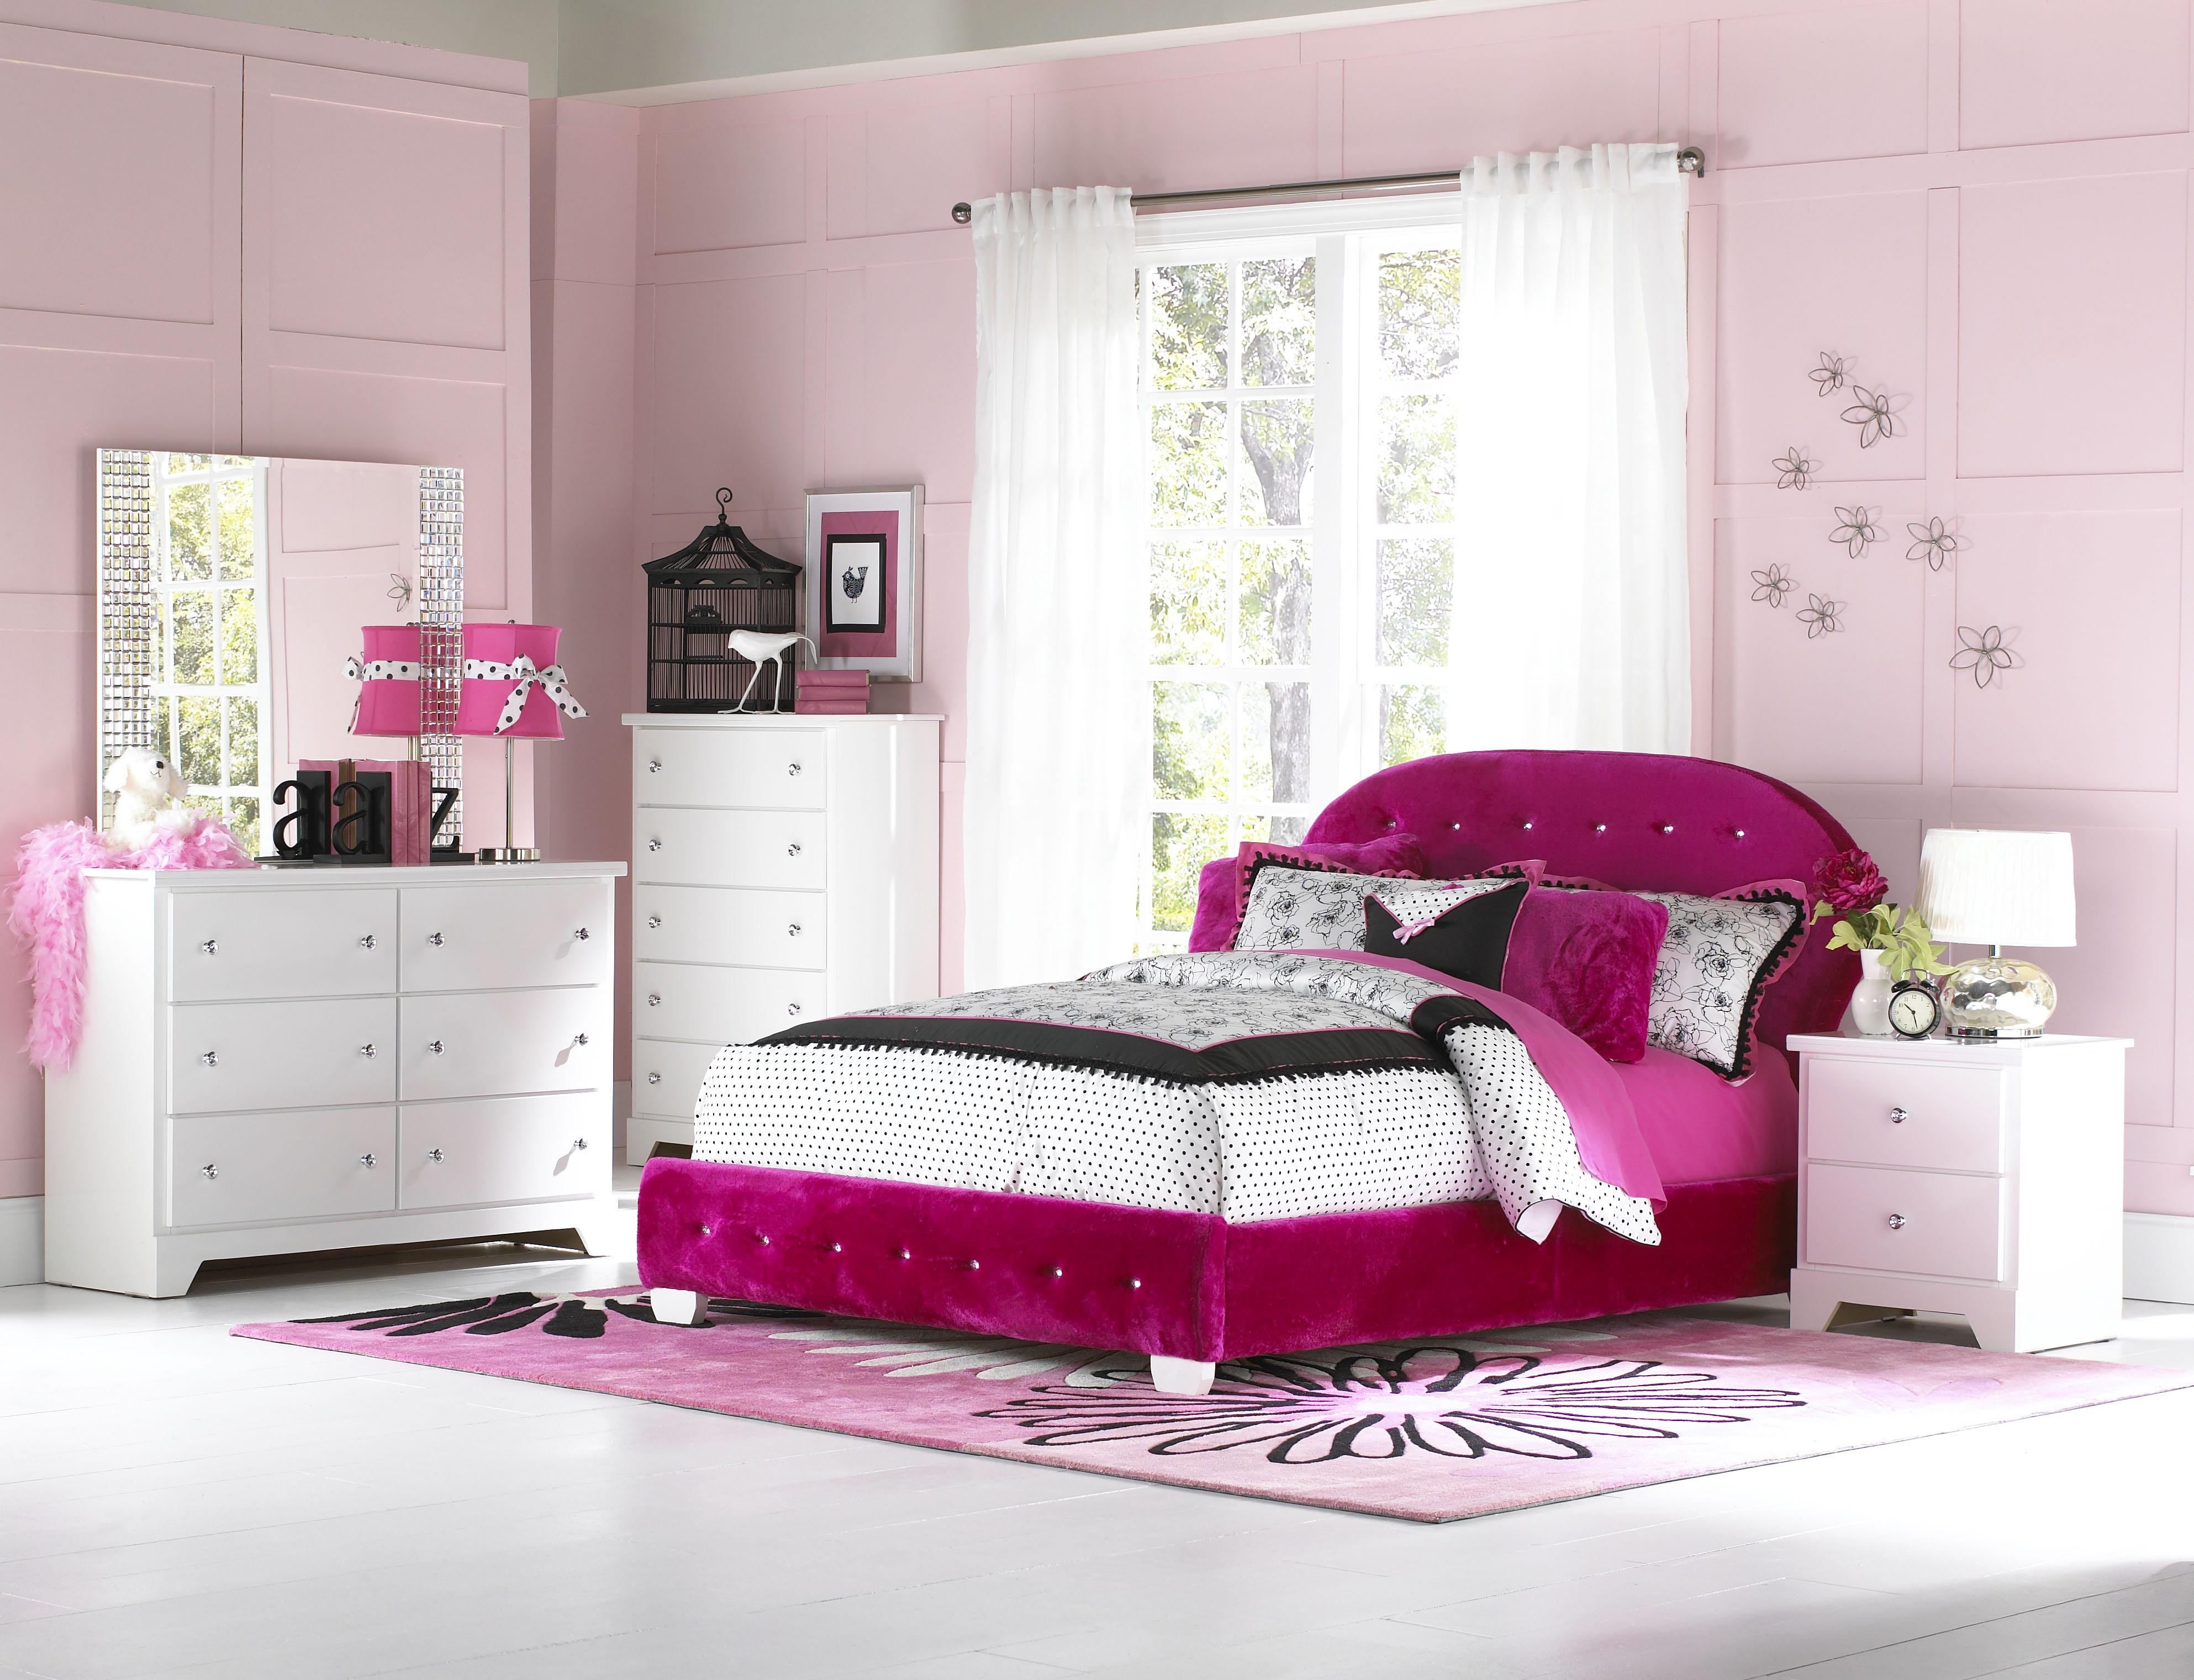 Standard Furniture Marilyn Youth Twin Bedroom Group - Item Number: 66300 T Bedroom Group 2